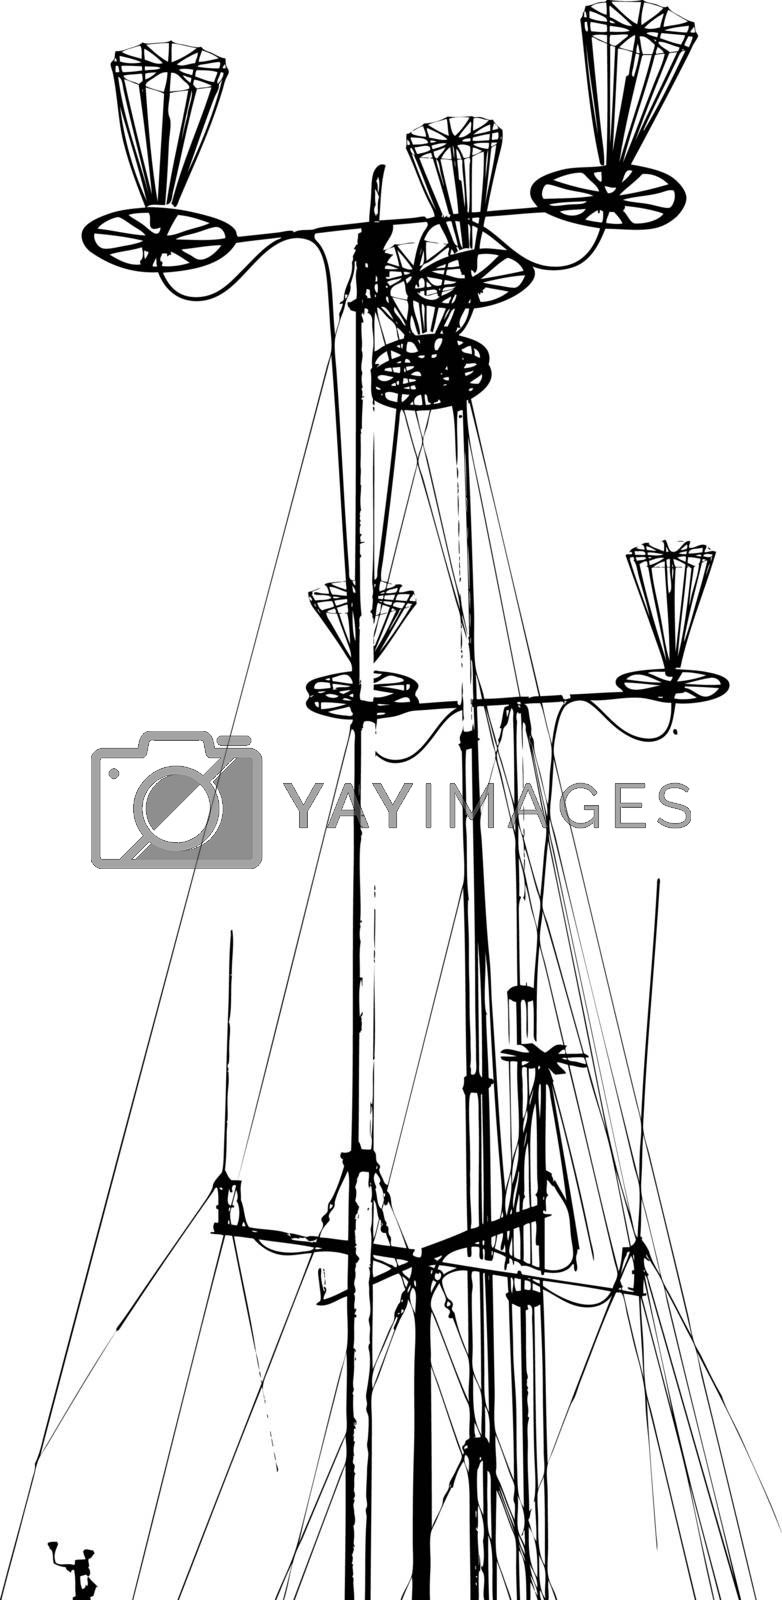 Antenna for transmitting and receiving radio communications. Vector illustration.